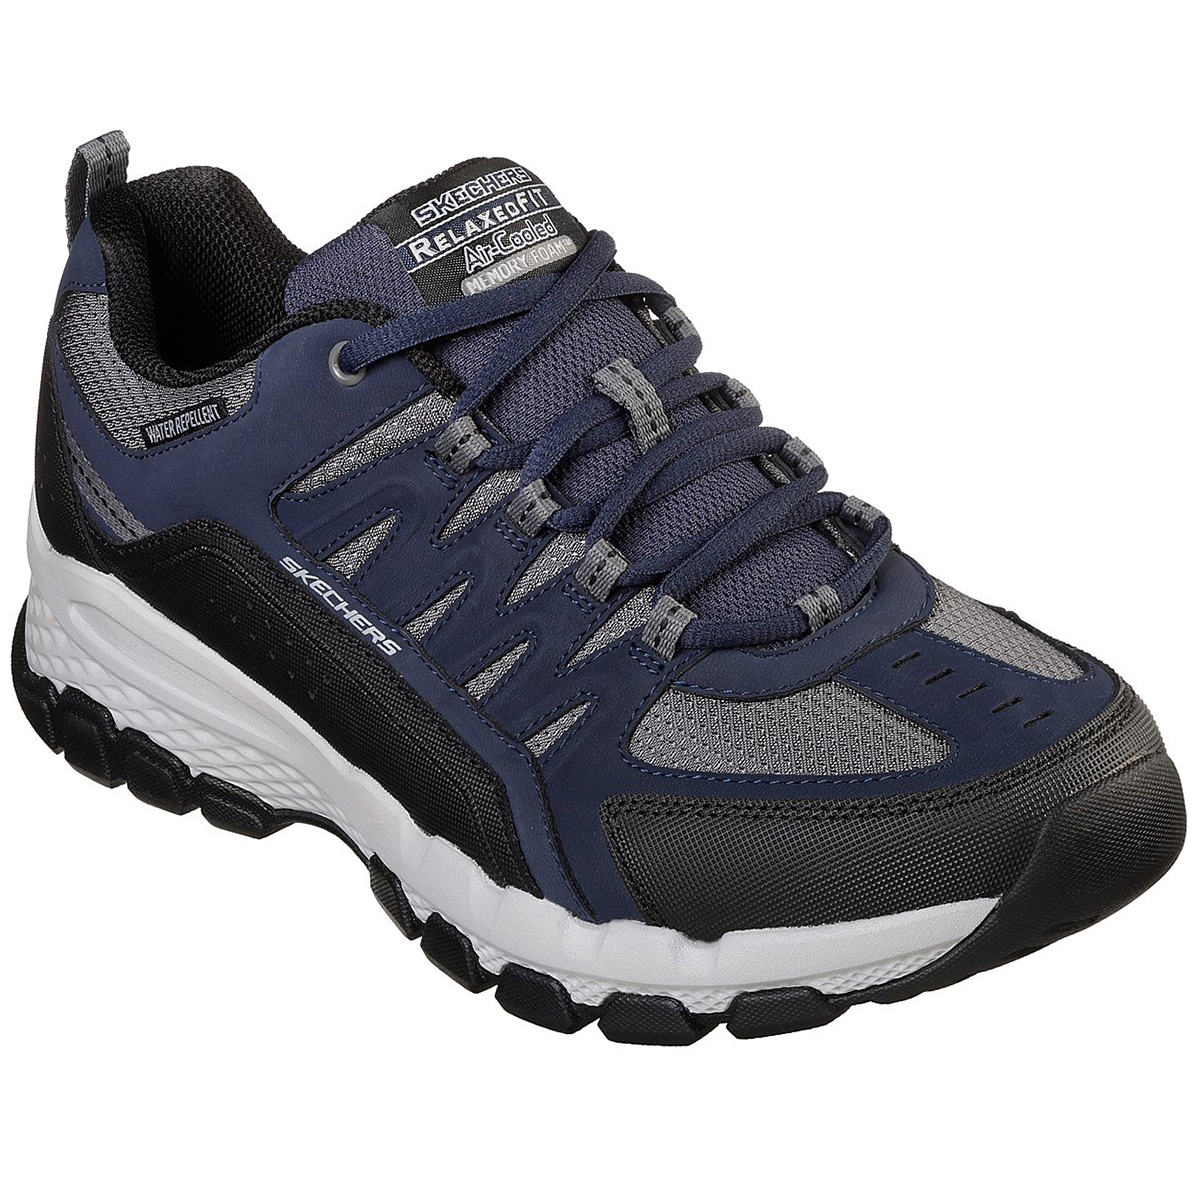 Skechers Men's Relaxed Fit: Outland 2.0 - Rip-Staver Sneakers - Blue, 9.5